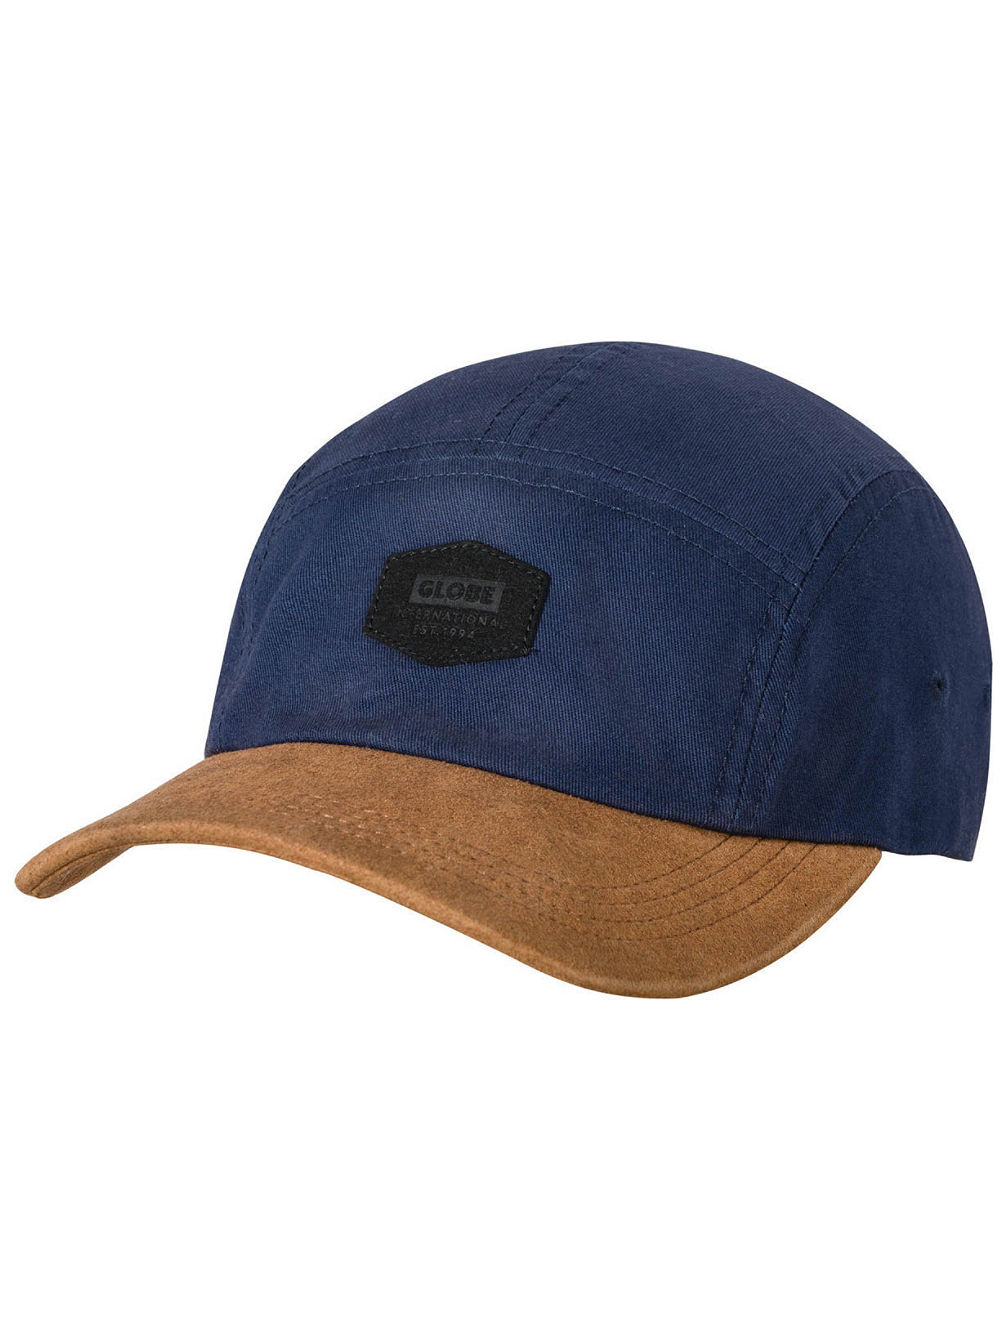 Staple 5 Panel Cap